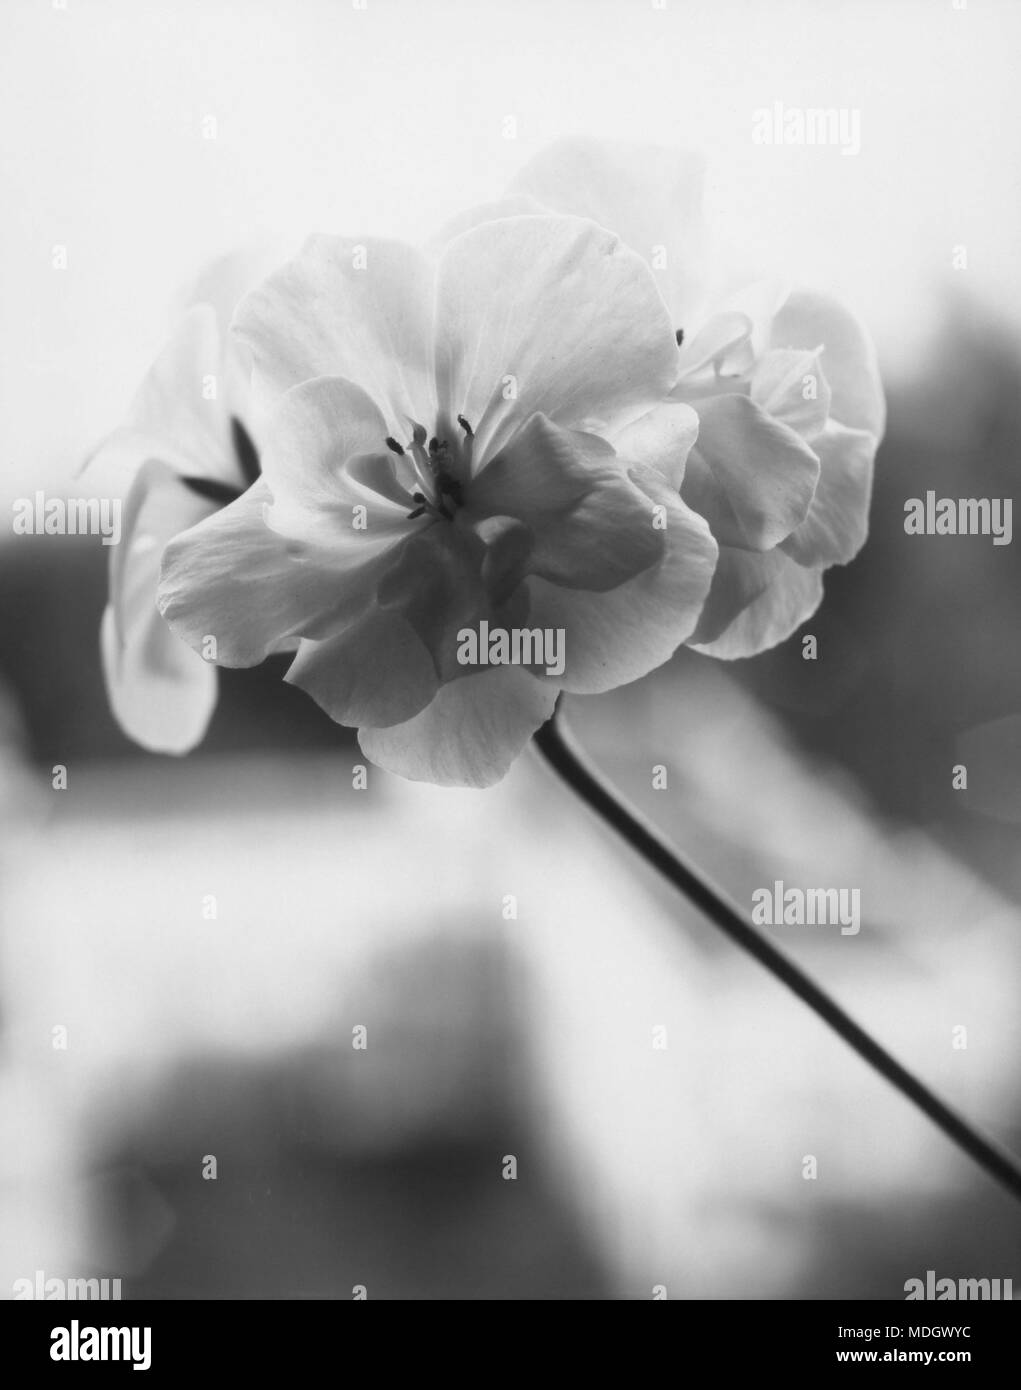 Geranium flower close-up. Inversion of the paper negative. Attention! The image contains granularity and other artifacts of analog photography! - Stock Image